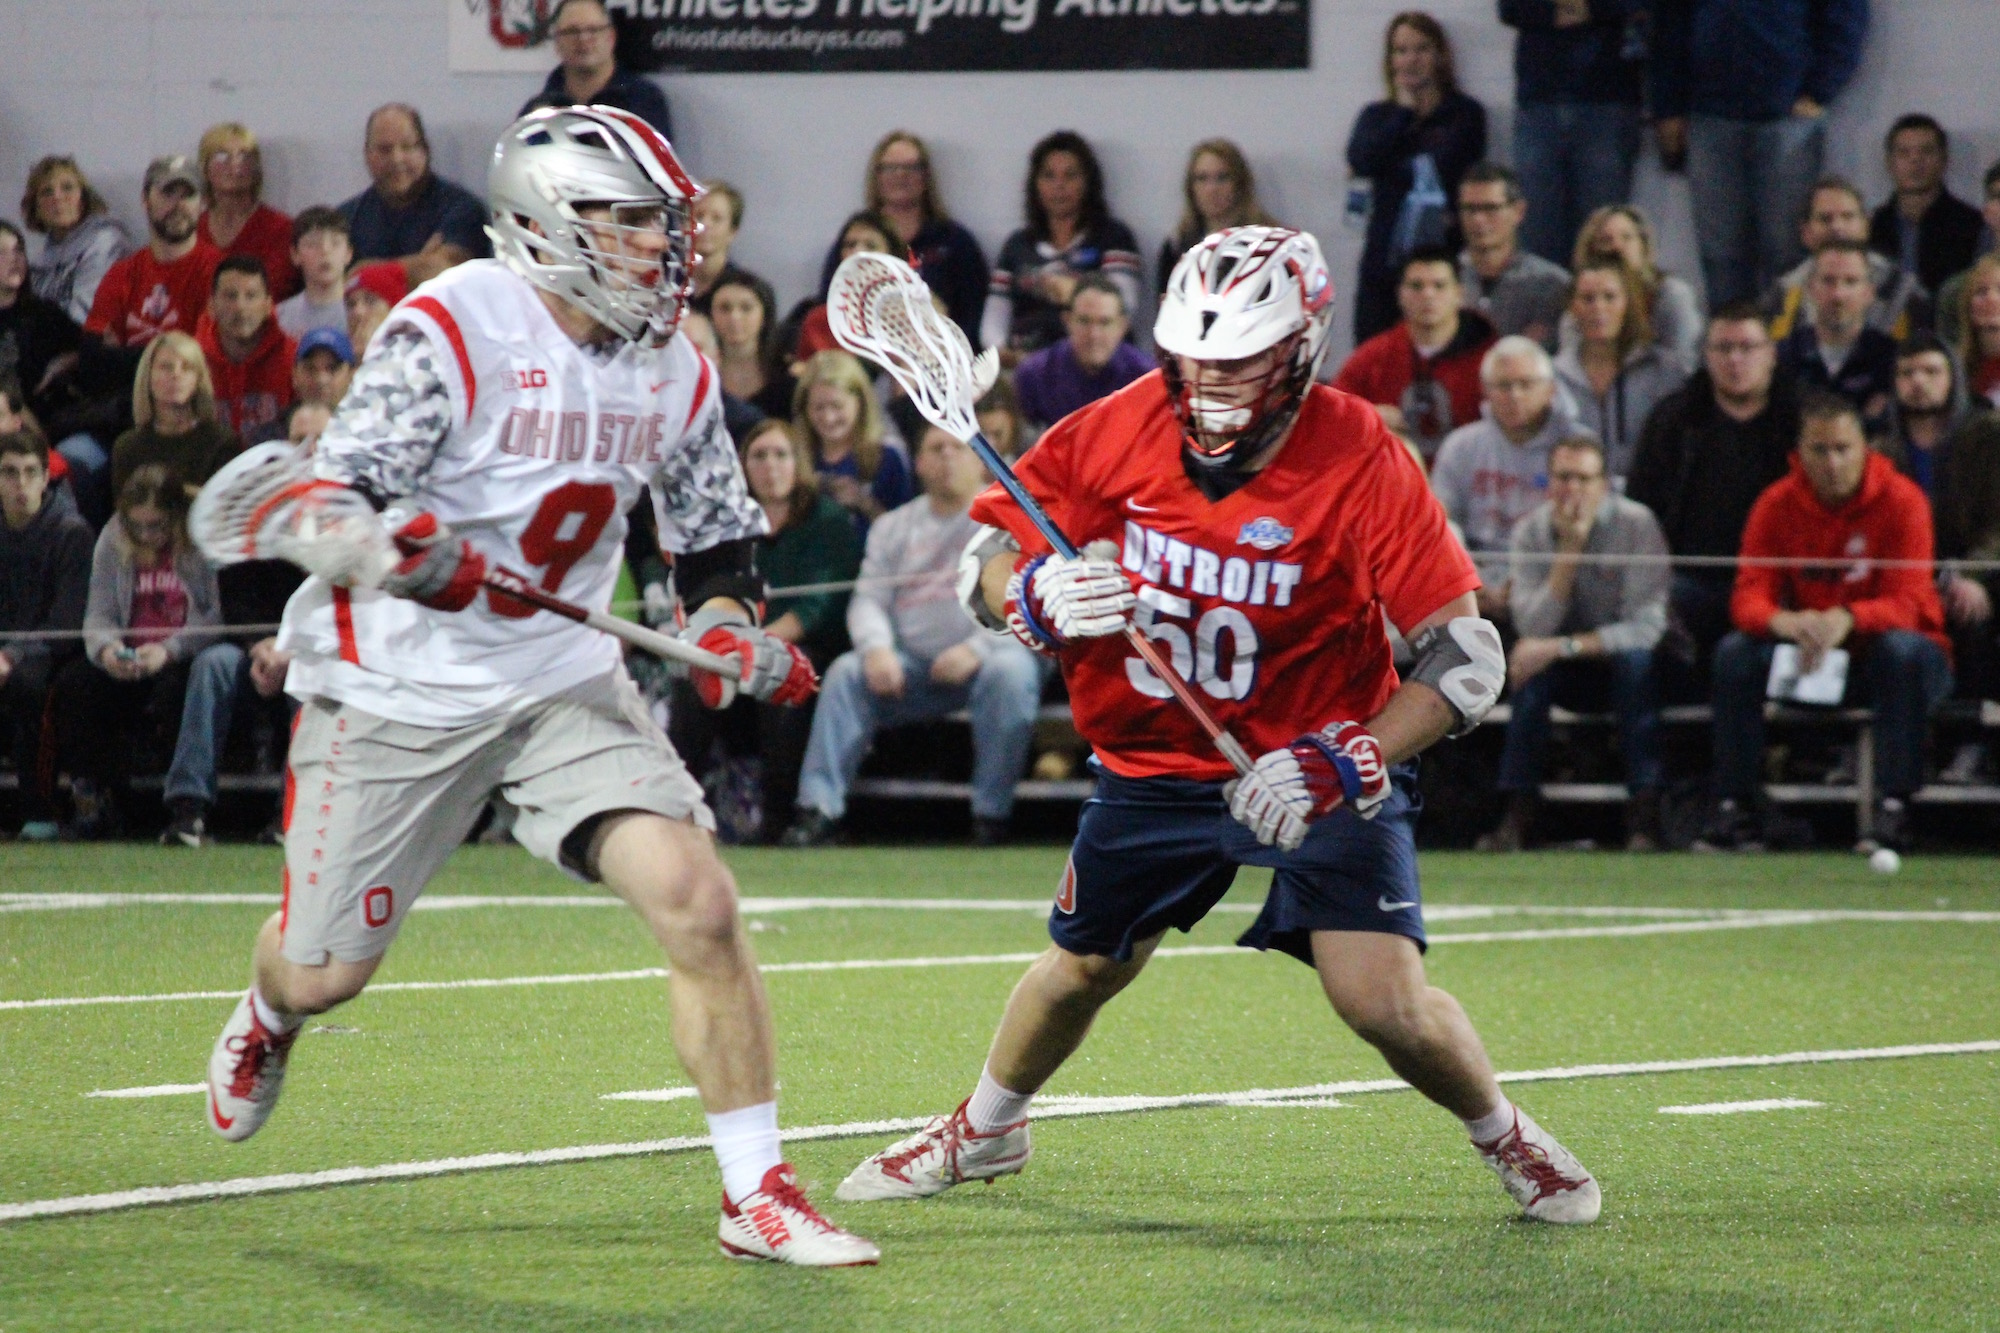 OSU junior attackman JT Blubaugh (9) moves past Detroit senior midfielder Mike Spuller (50) during the Buckeyes' contest with the Titans at the Woody Hayes Athletic Center on Feb. 13. OSU won 16-5. Credit: Miles McQuinn | Lantern photographer